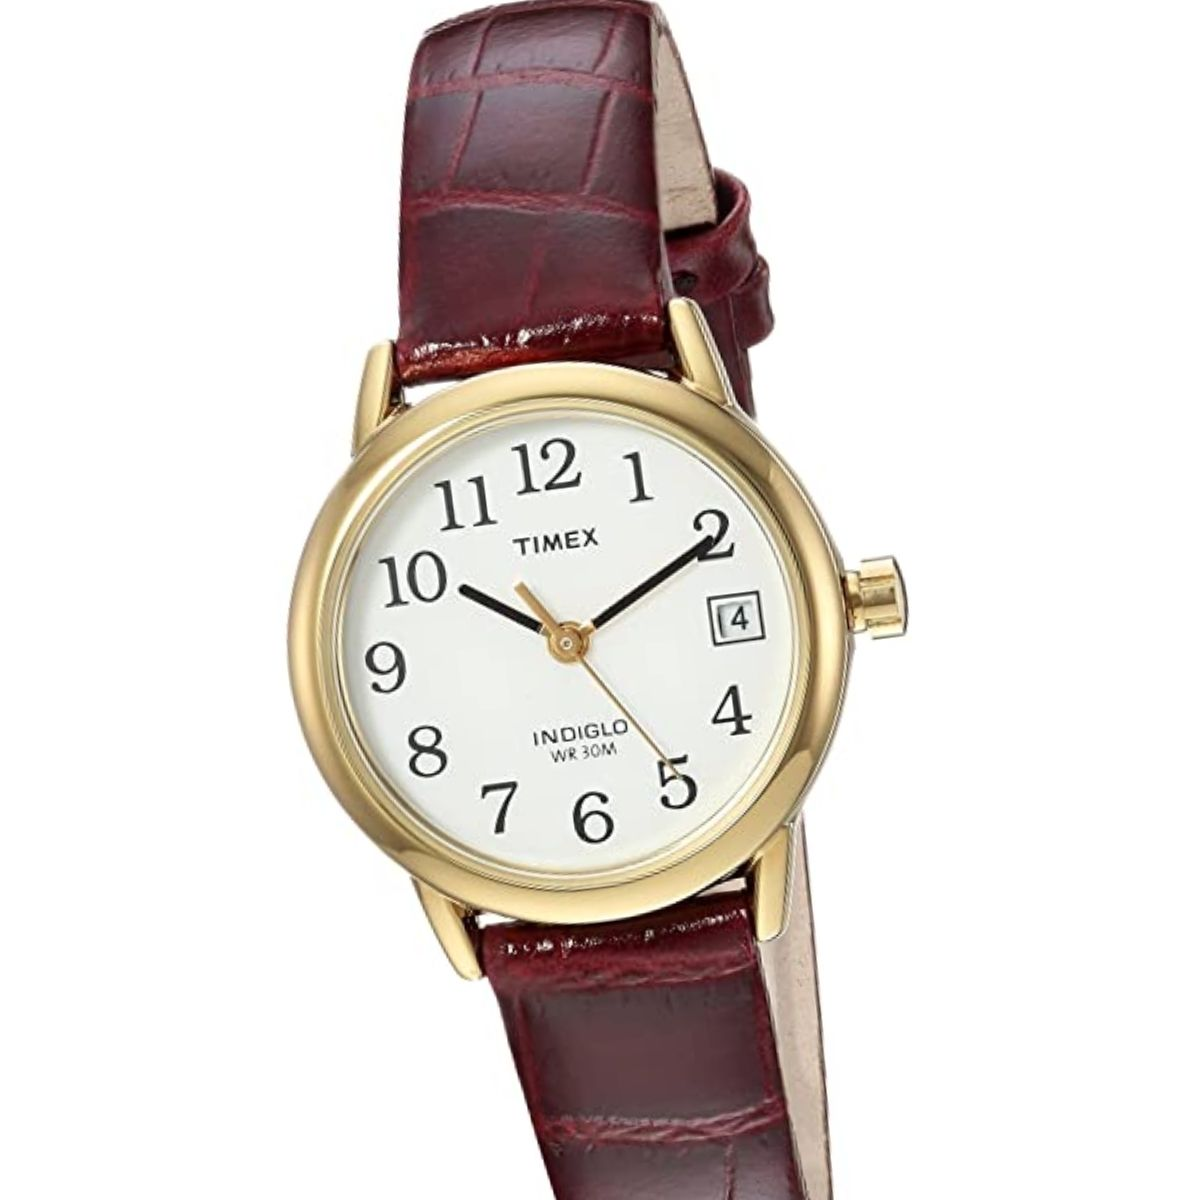 Timex Women Watches For Her USA